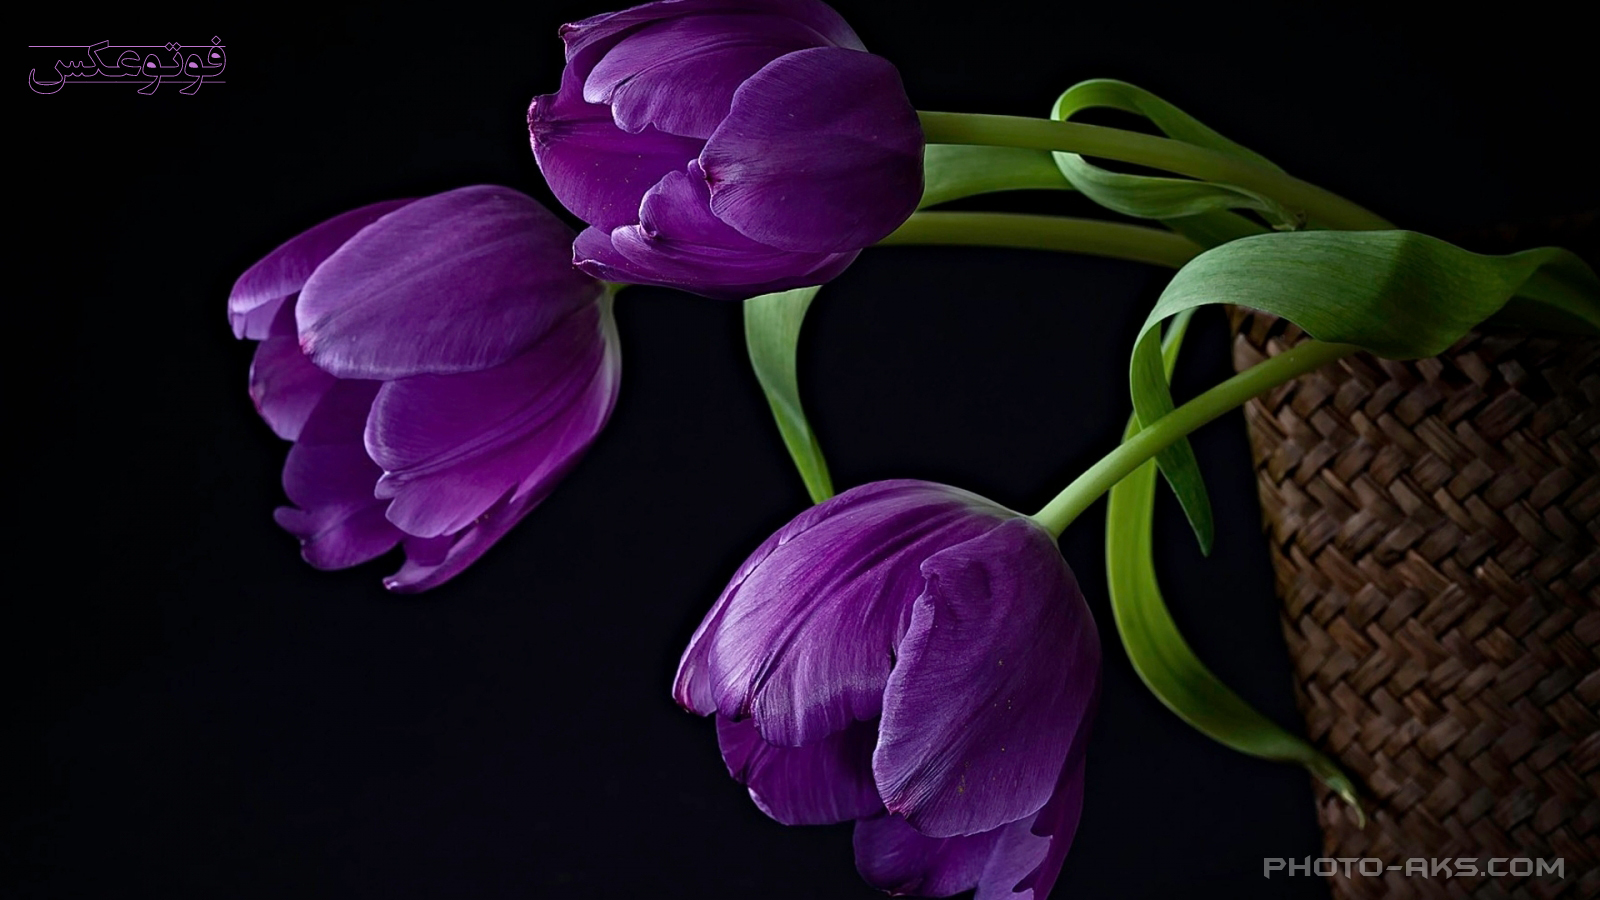 http://pic.photo-aks.com/photo/nature/flowers/tulip/large/purple-tulips-photo-aks.com.jpg